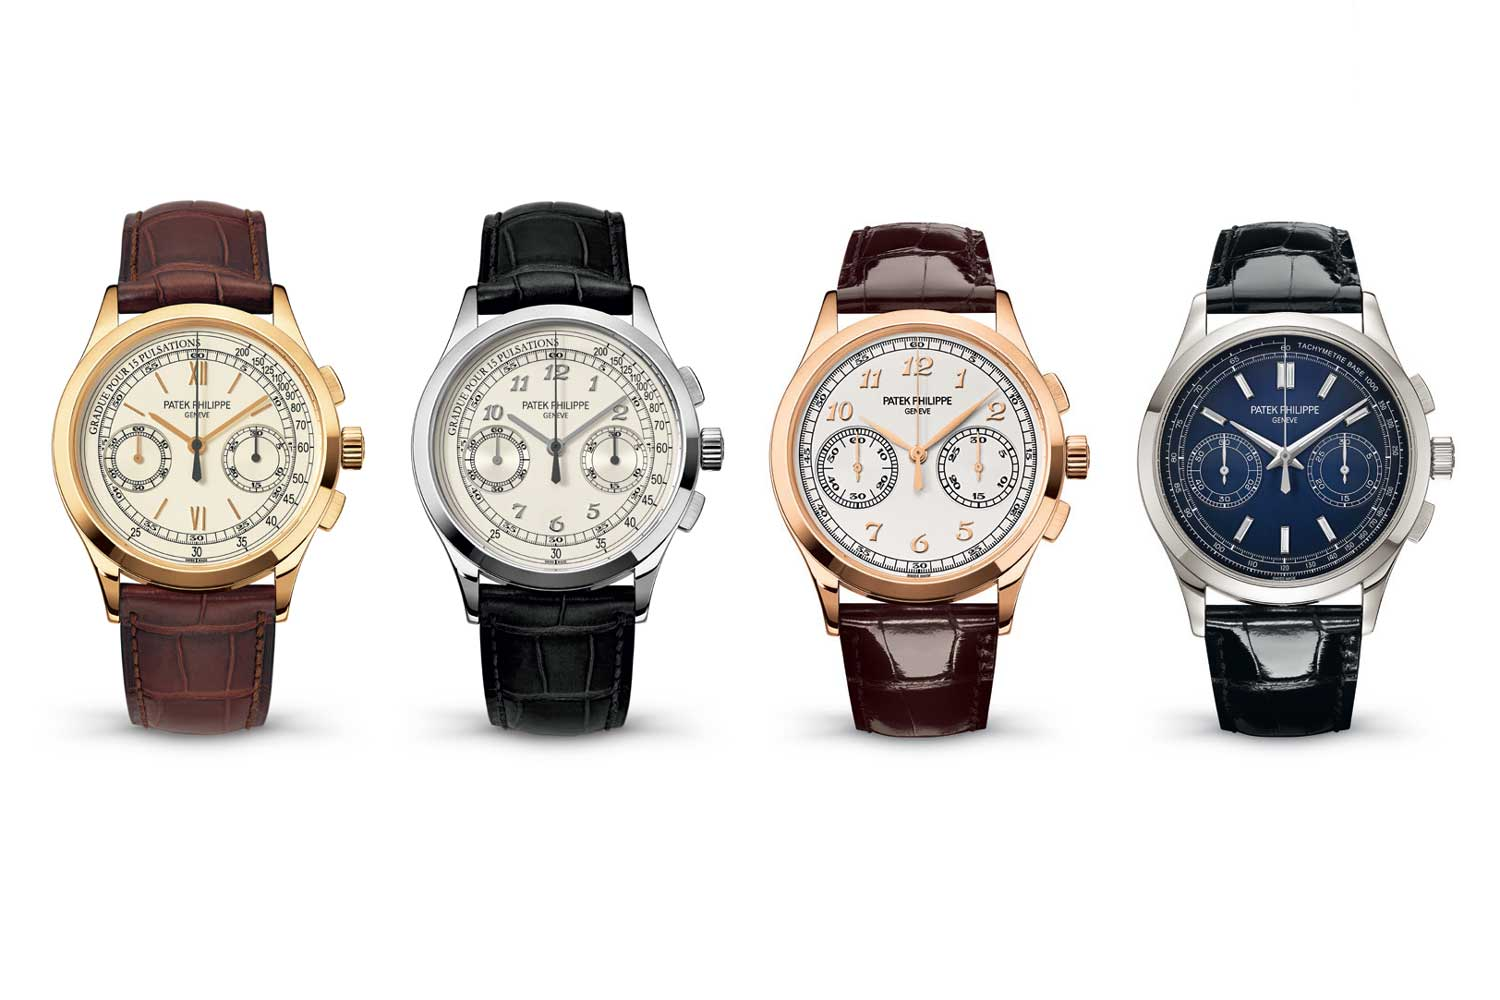 From left, key executions of the 5170 and their production years: Yellow gold with Roman Numerals 5170J-001, 2010-2014; White Gold with Breguet numerals 5170G-001, 2013-2016; Rose Gold with Breguet Numerals 5170R-001, 2016-2018; Platinum with Diamond Hour Markers 5170P-001, 2017-2019